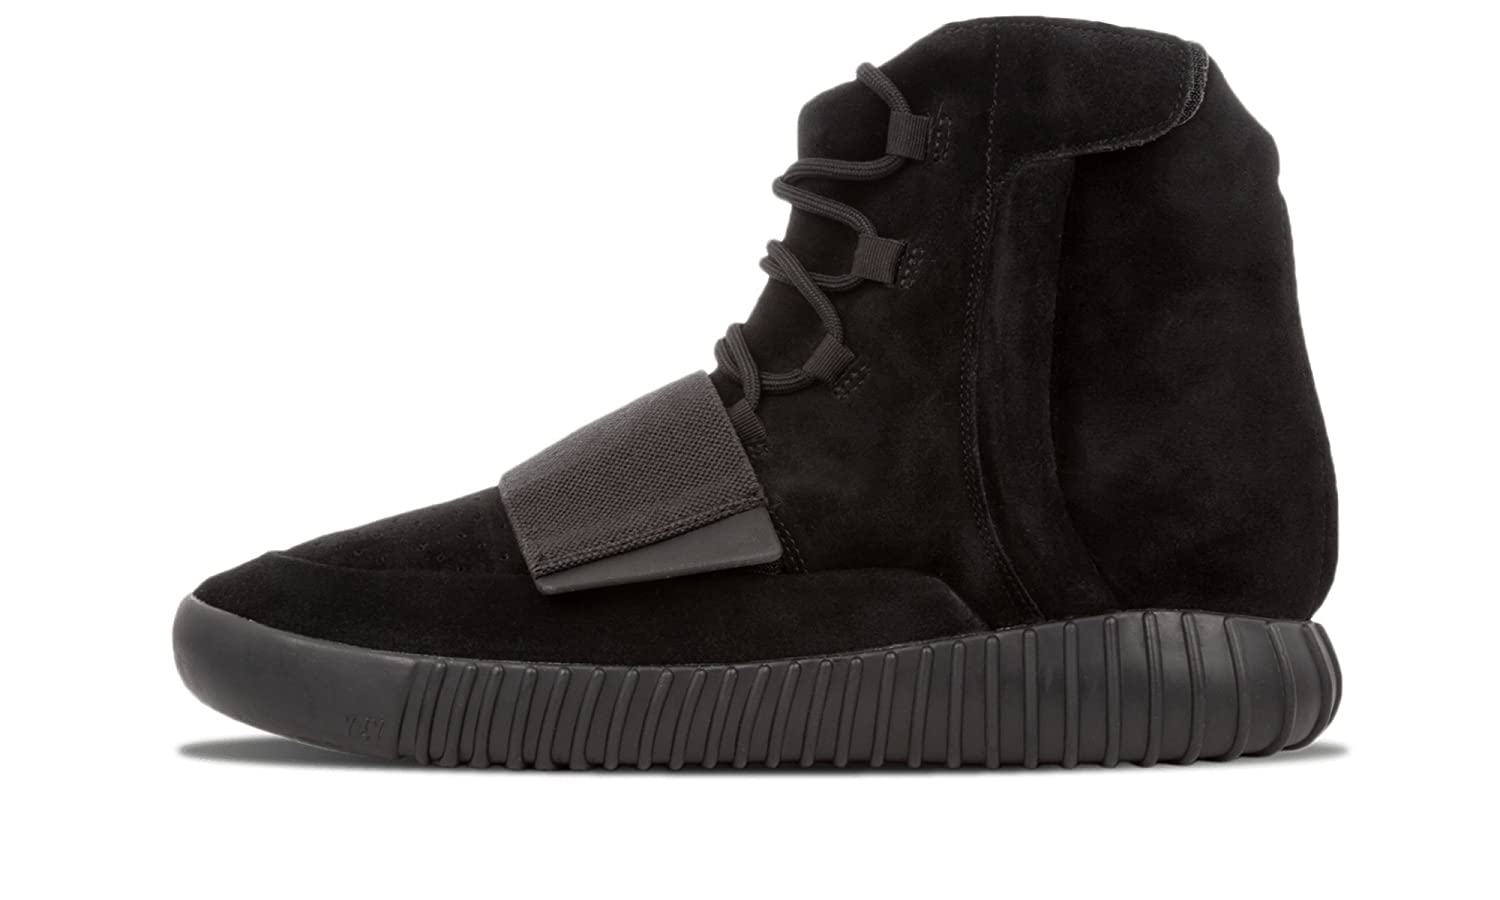 yeezy boost 750 v2 adidas kanye west contract